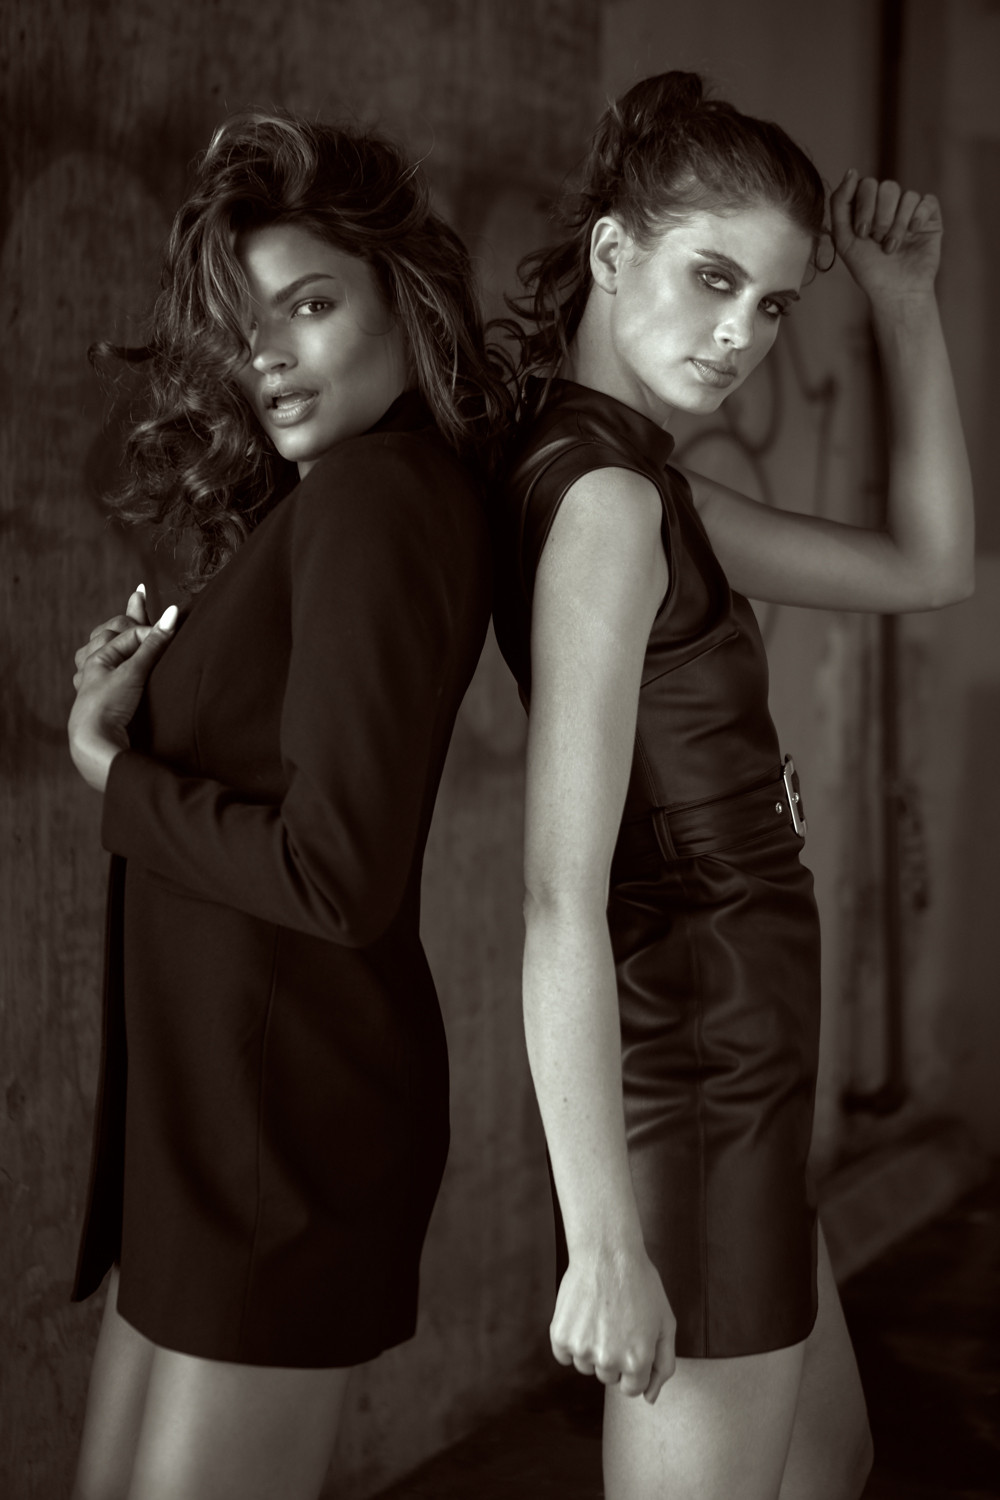 Sianna Nelson of L.A. Models and Livia Pillmann of The Industry Model Management L.A. by Patrick and Andrea Patton